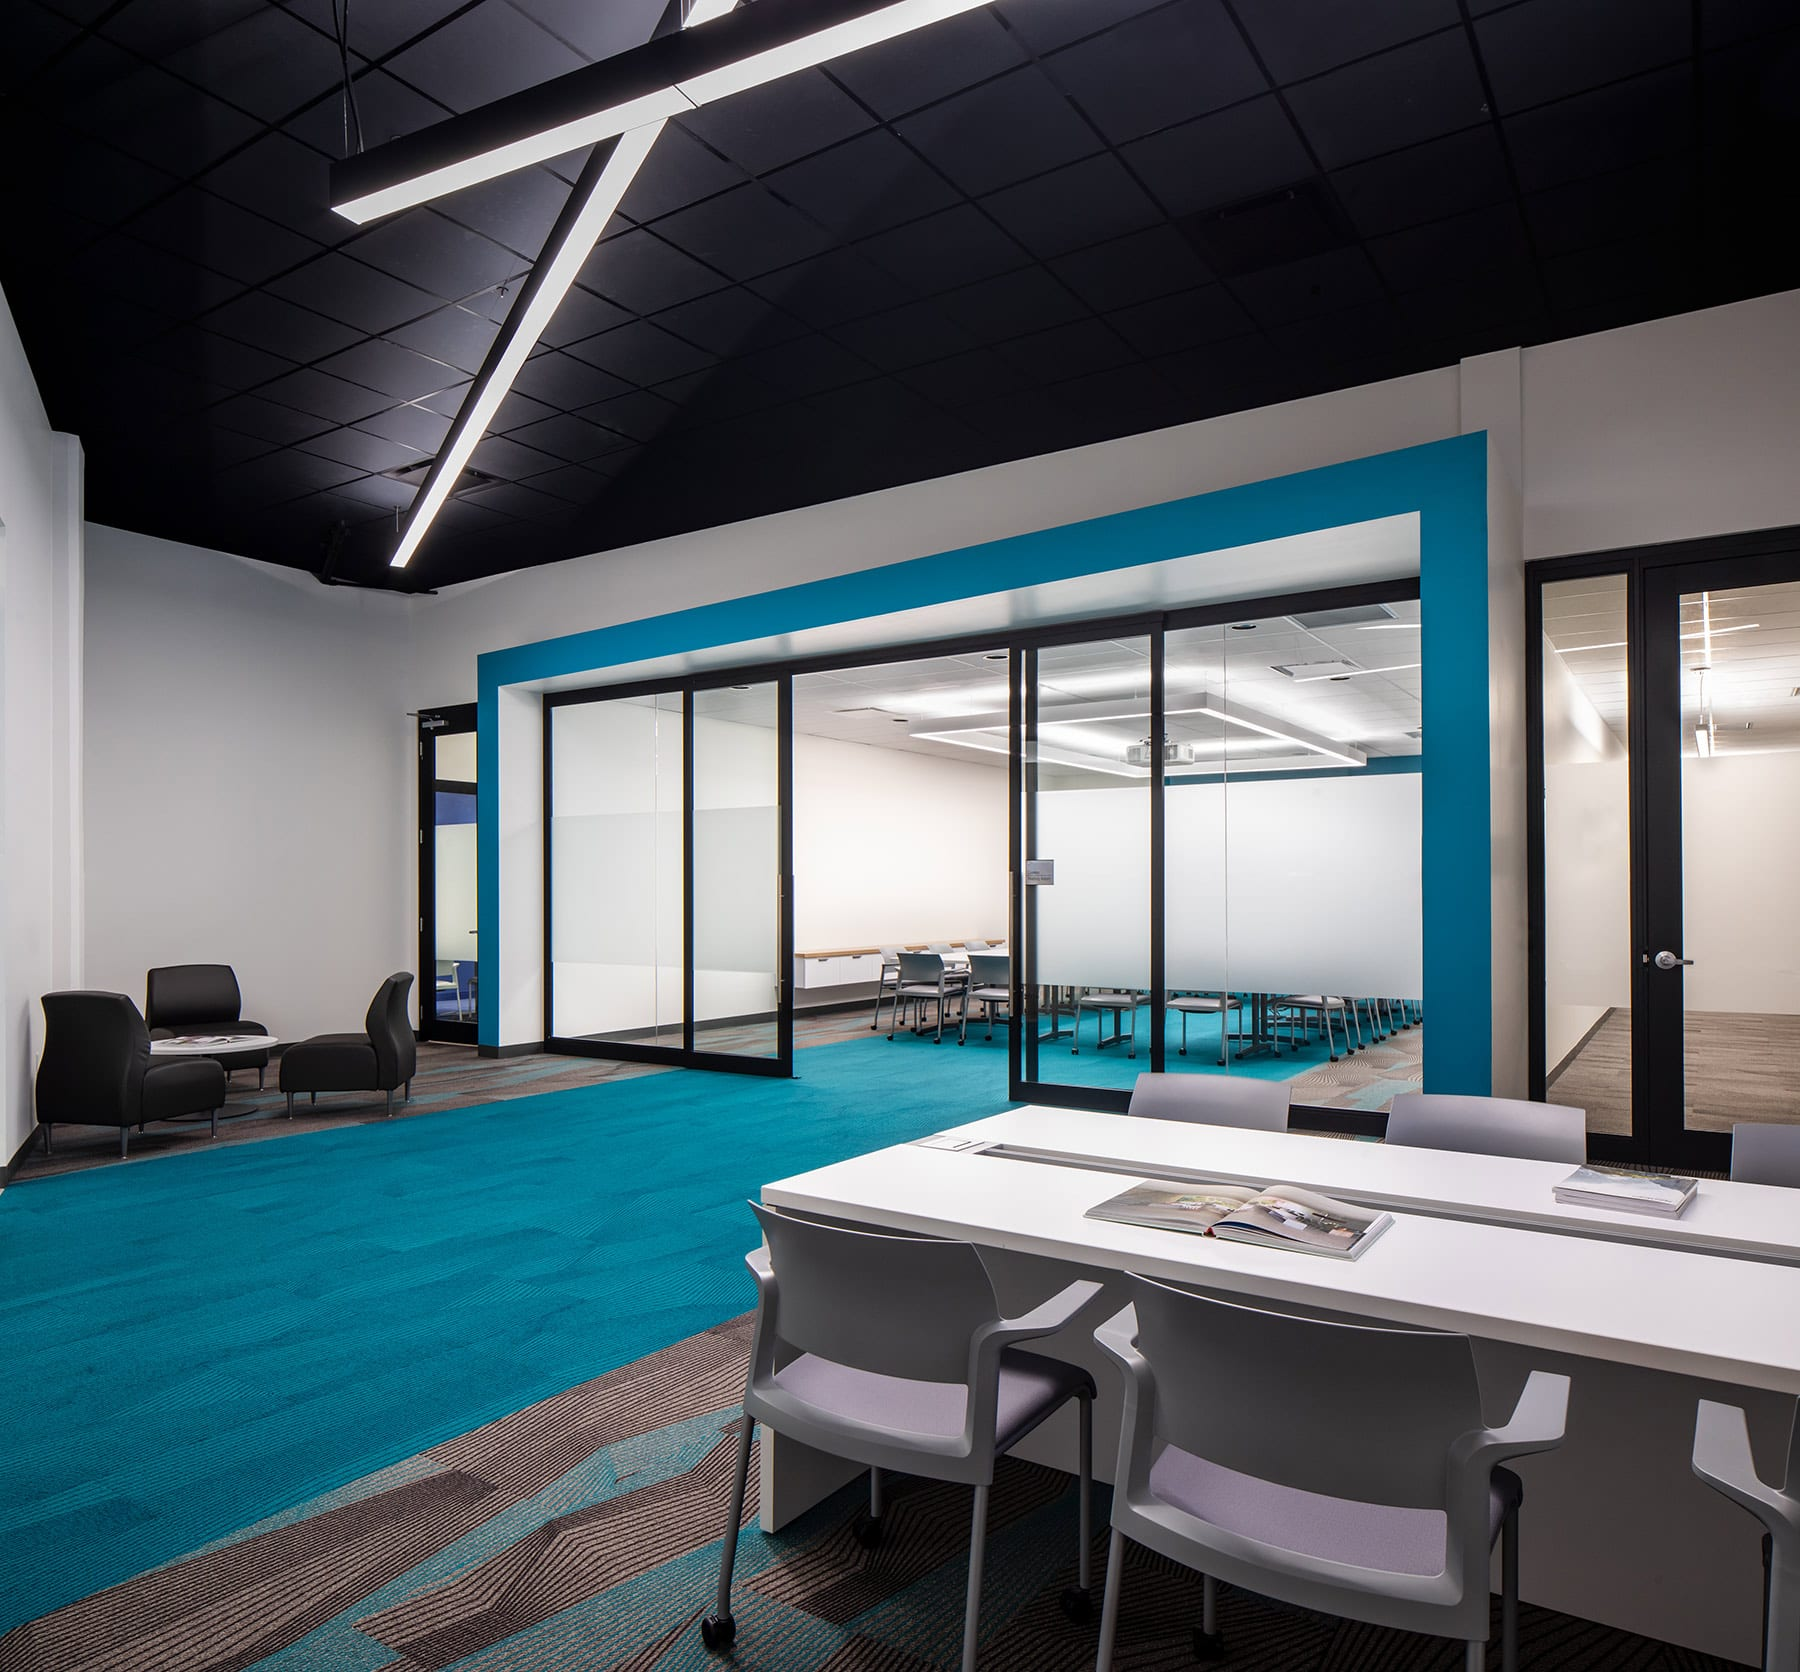 Surrey tenant fitout with a high ceiling cavity with modular partition walls